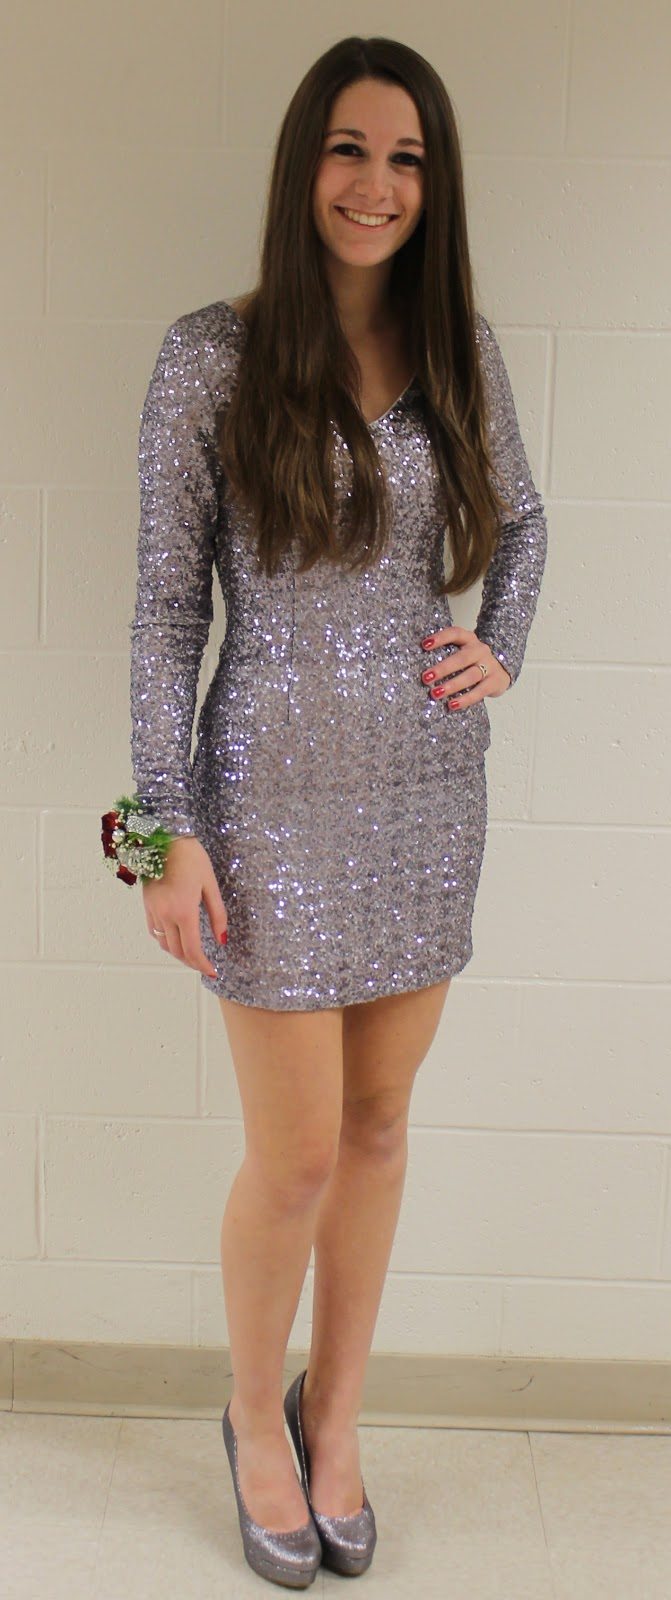 500 Days of Style: The Christmas Dance! (High School and ...